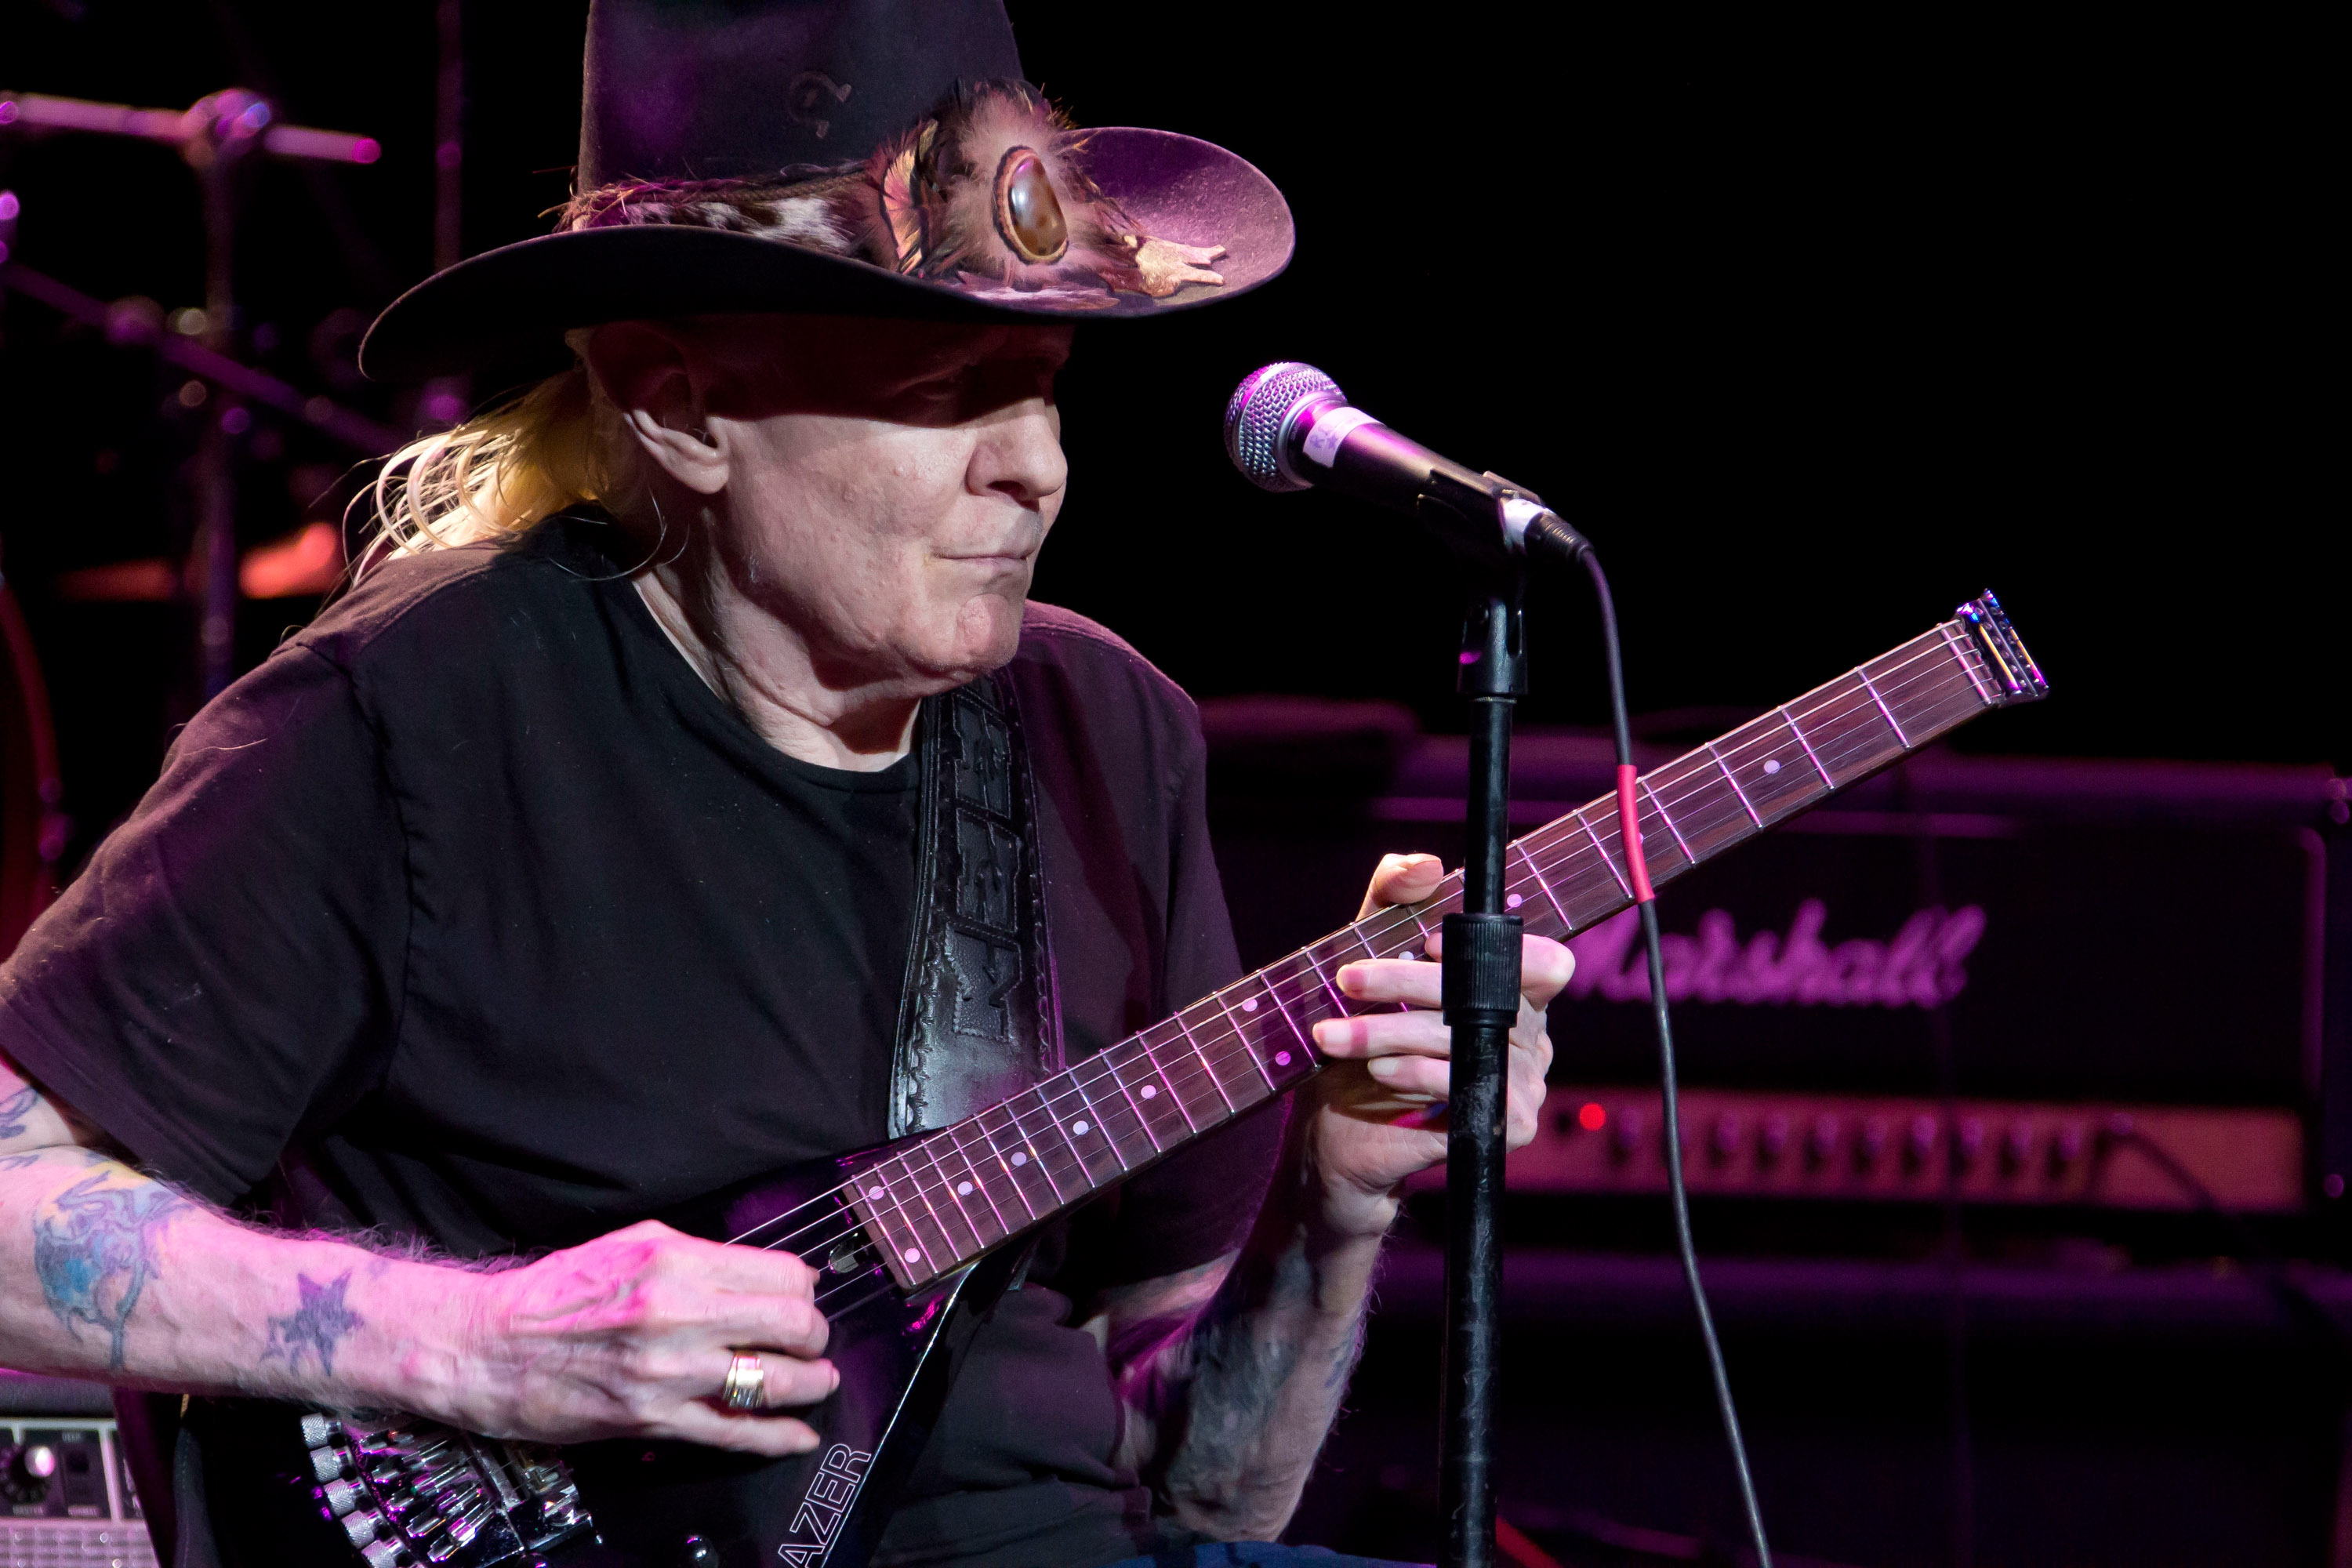 CLARKSTON, MI - AUGUST 30:  Johnny Winter peforms at DTE Energy Center on August 30, 2012 in Clarkston, Michigan.  (Photo by